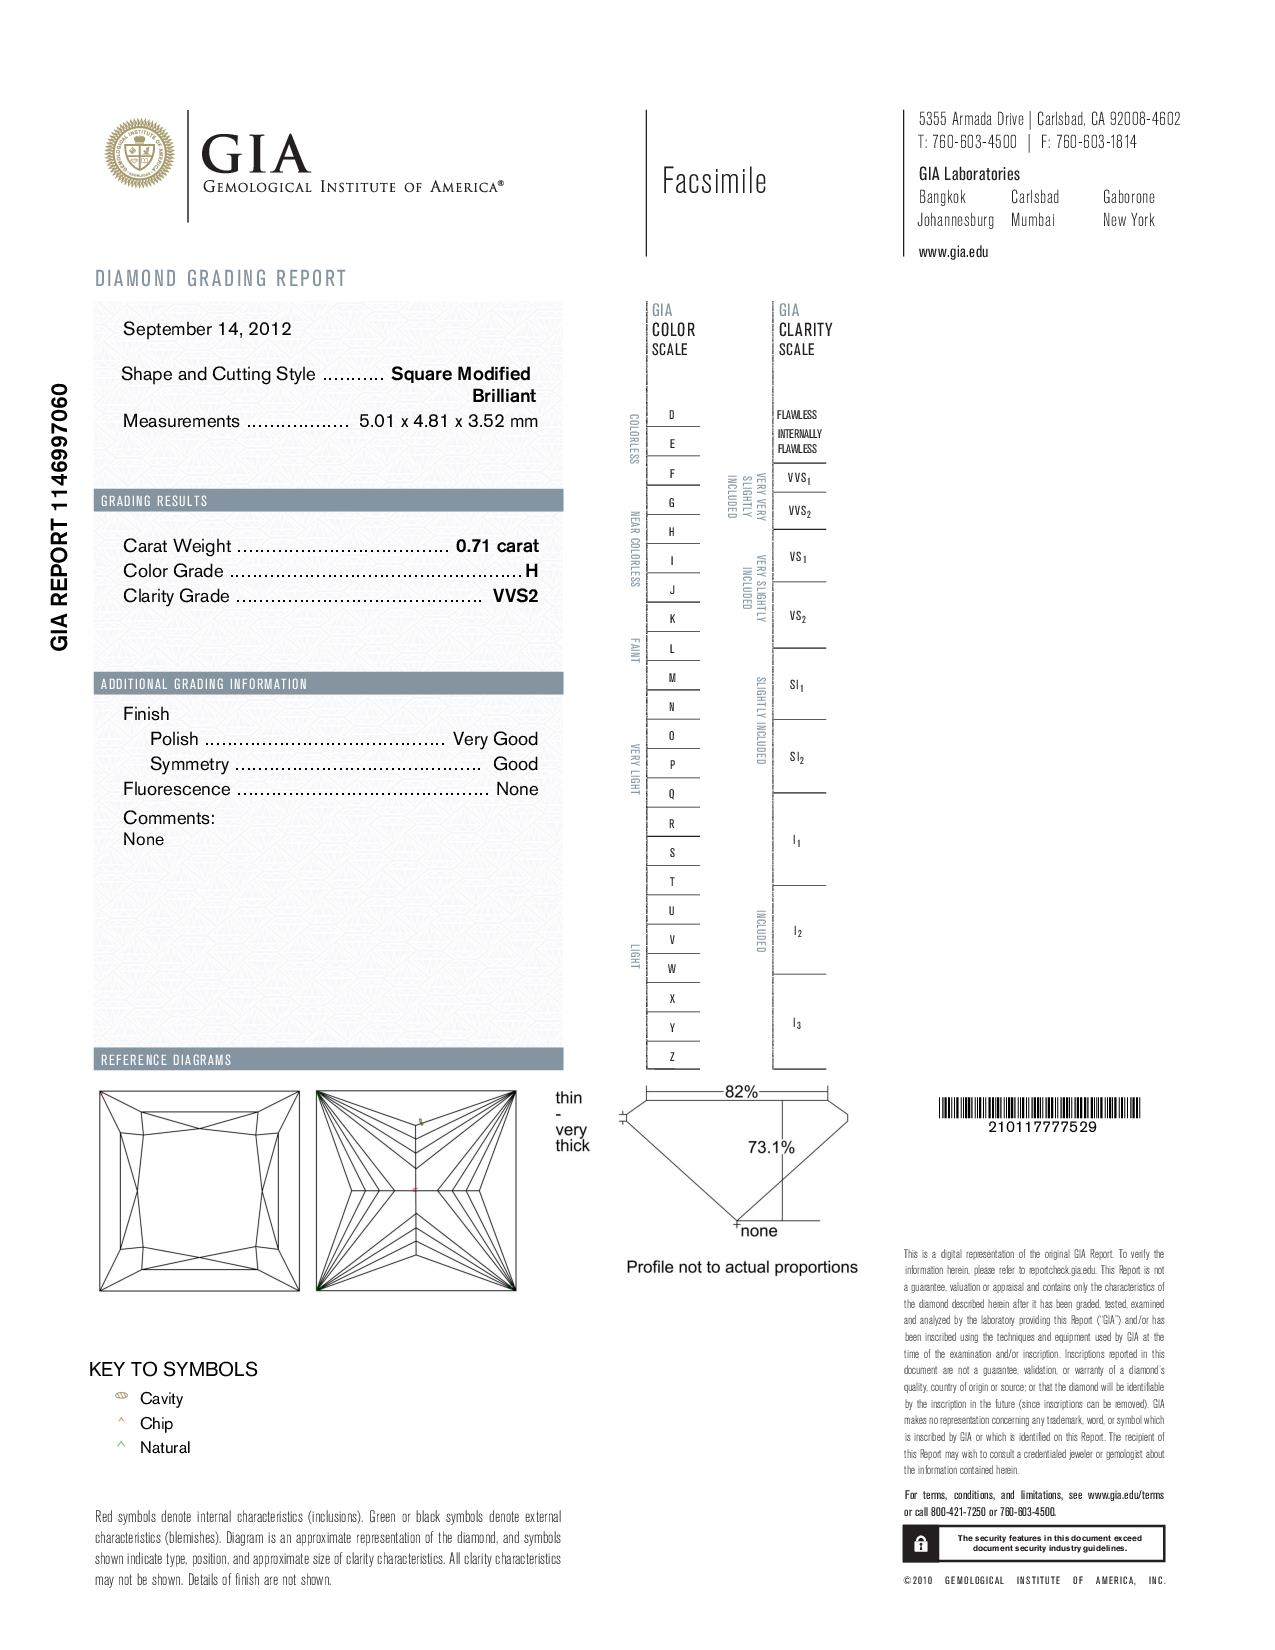 This is a 0.71 carat princess shape, H color, VVS2 clarity natural diamond accompanied by a GIA grading report.